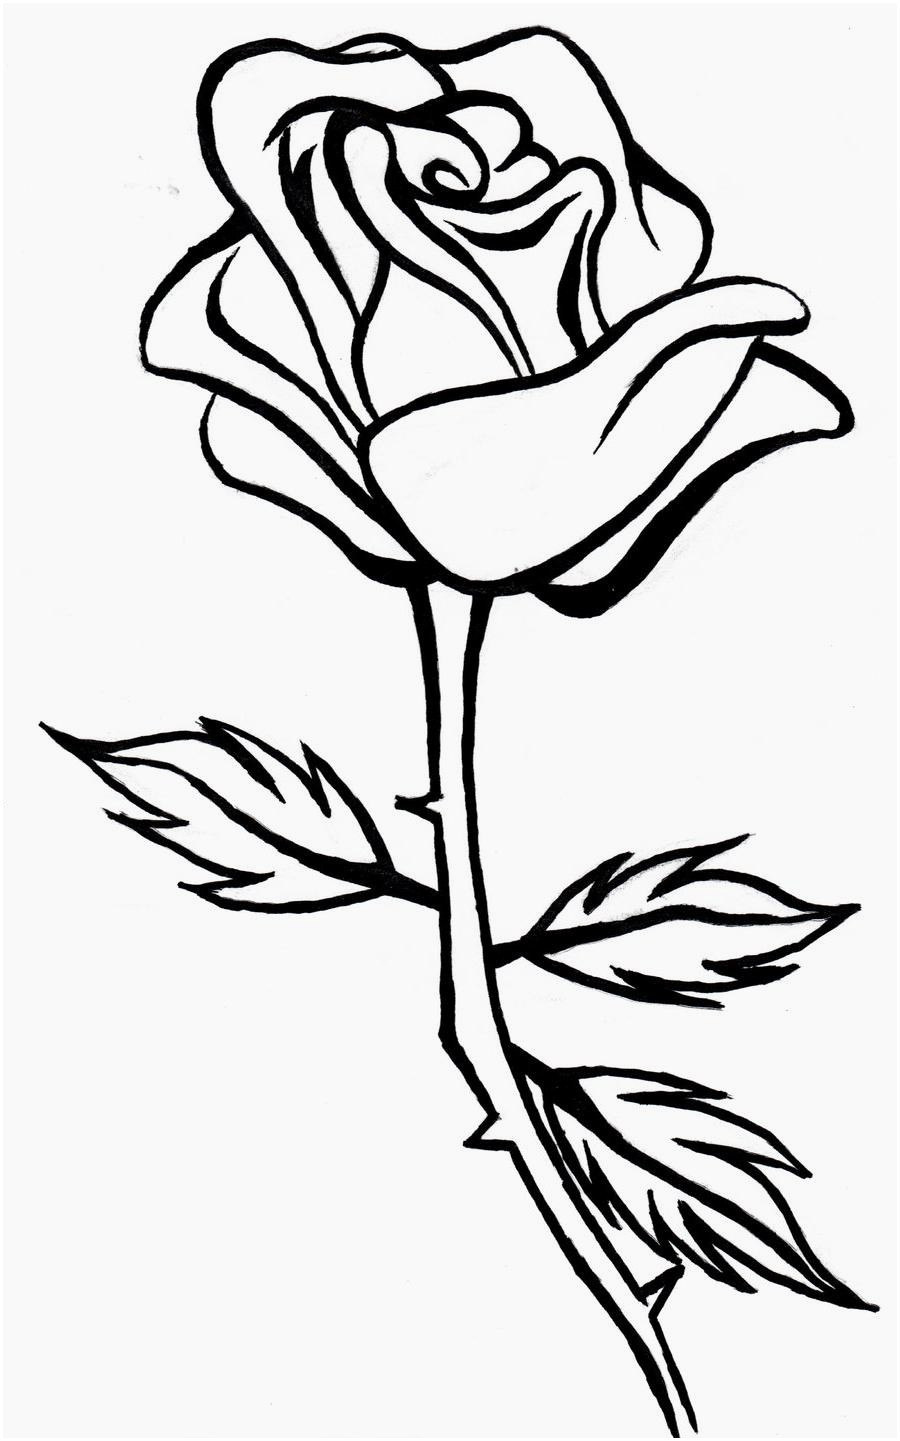 900x1441 black and white rose drawing black and white roses drawing black